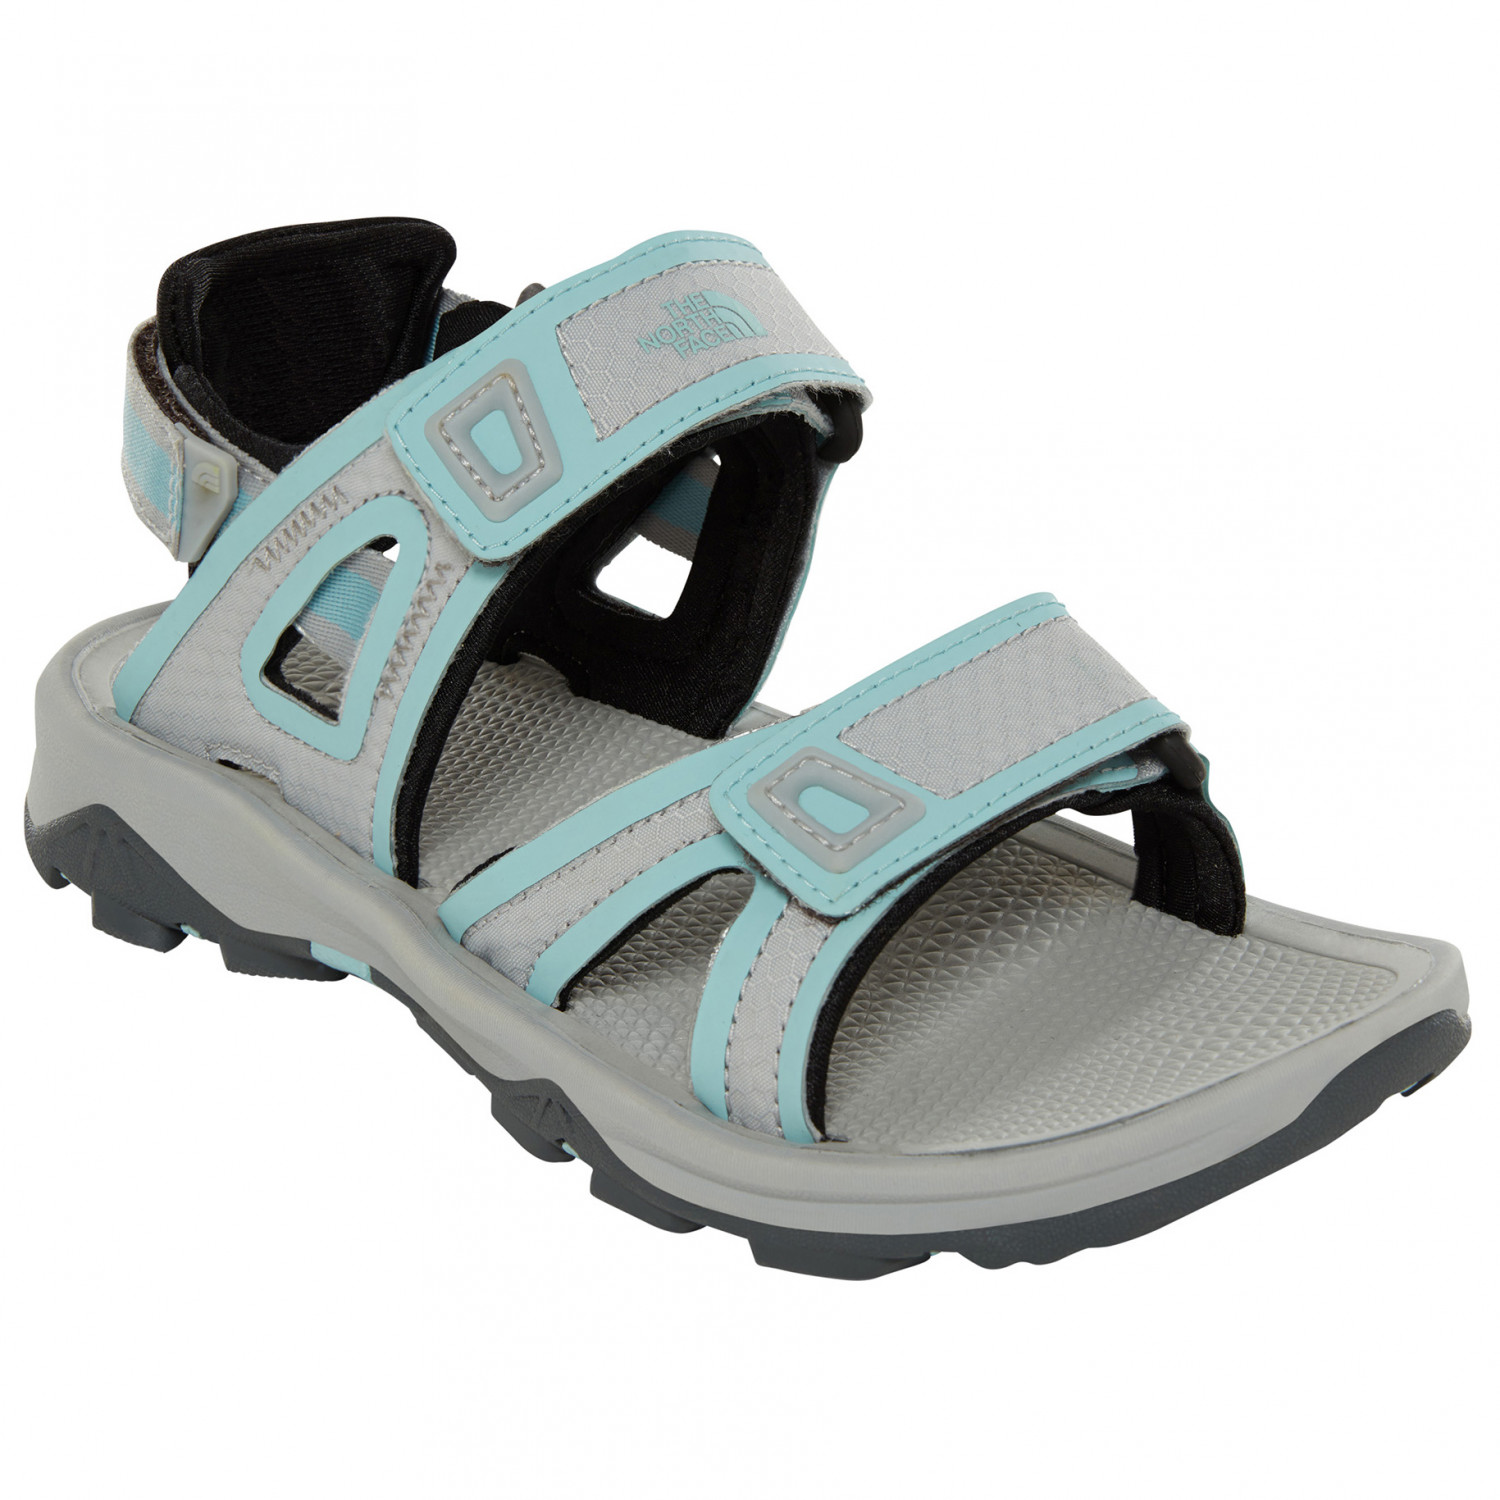 save off 3f44e 2491e The North Face - Women's Hedgehog Sandal II - Sandalen - High Rise Grey /  Canal Blue | 10 (US)